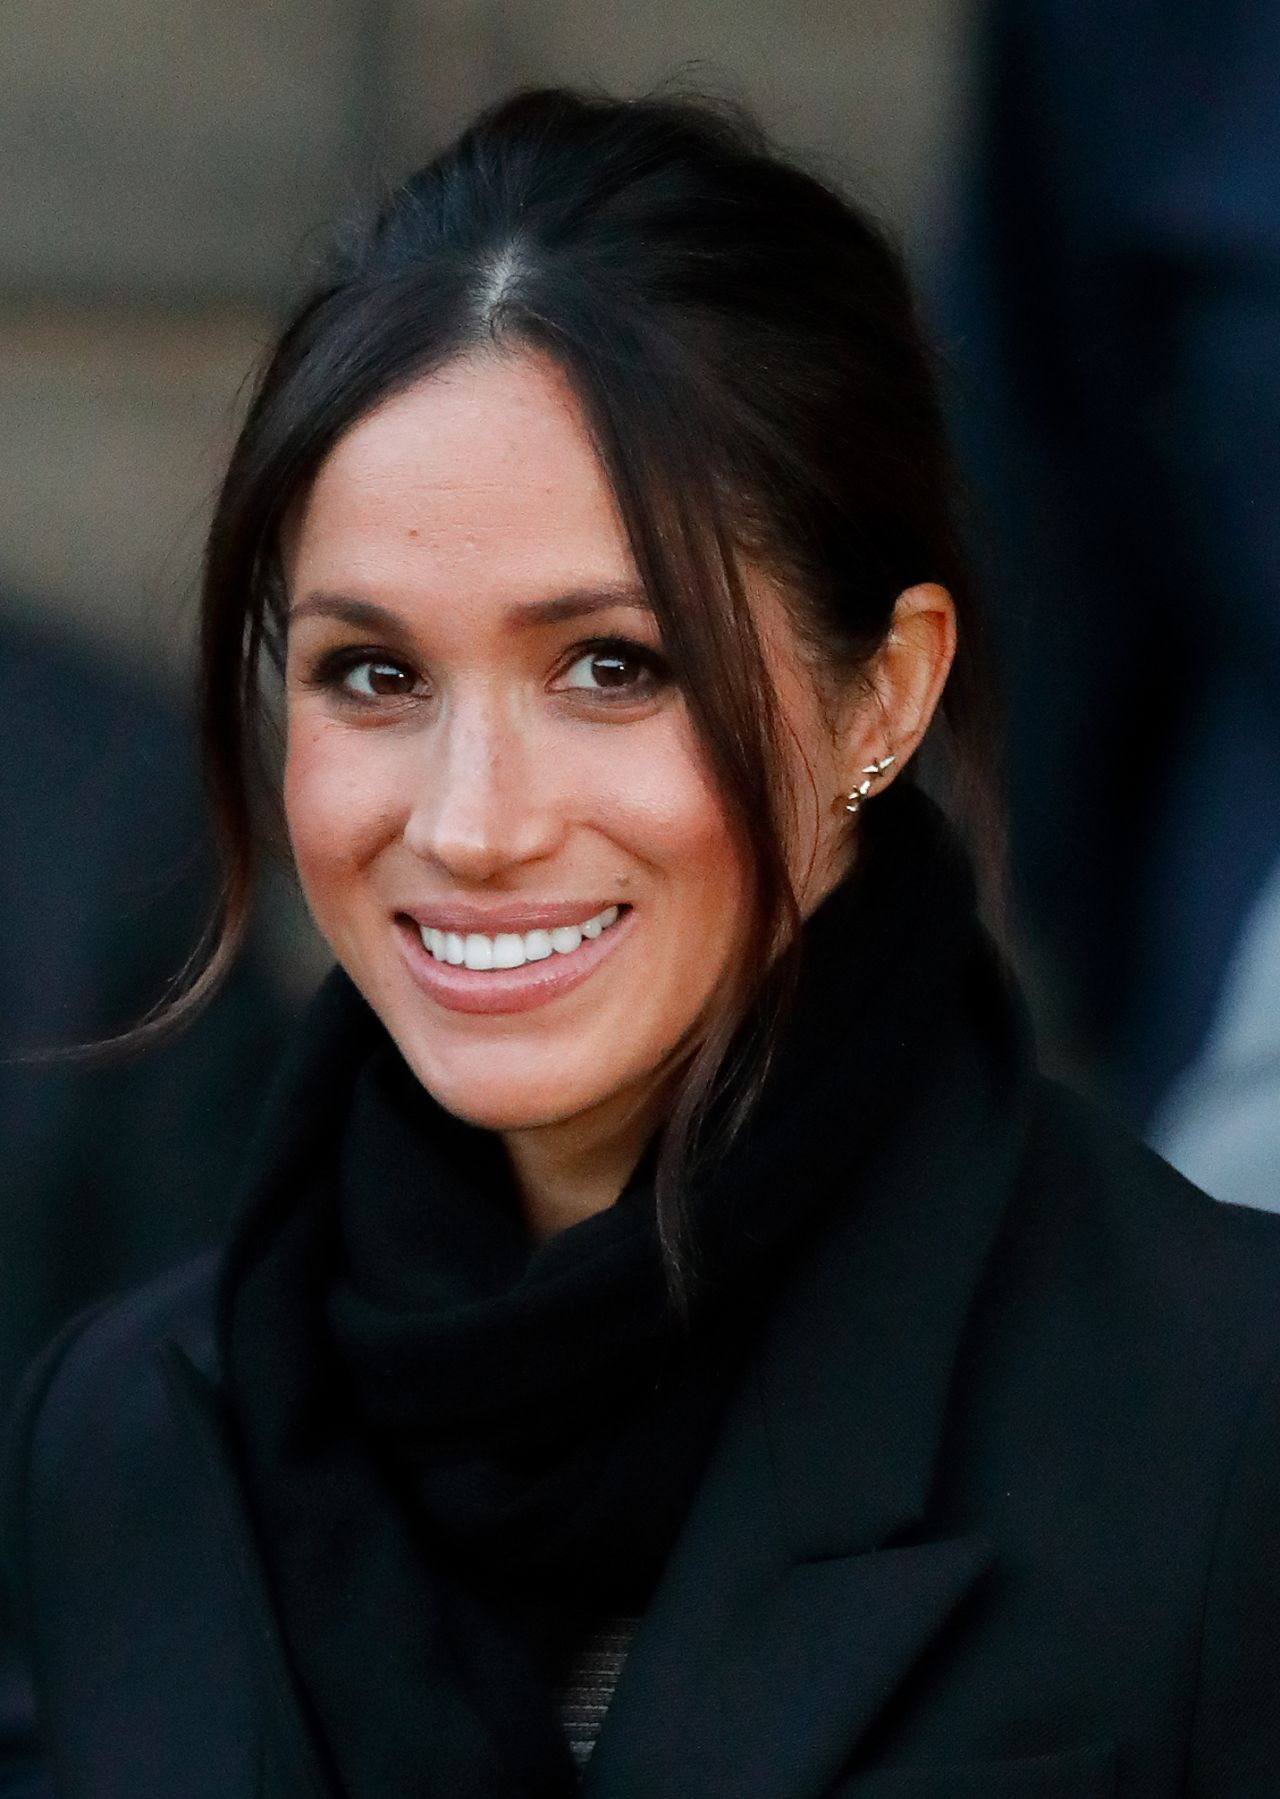 meghan-markle-and-prince-harry-visits-cardiff-castle-in-cardiff-5